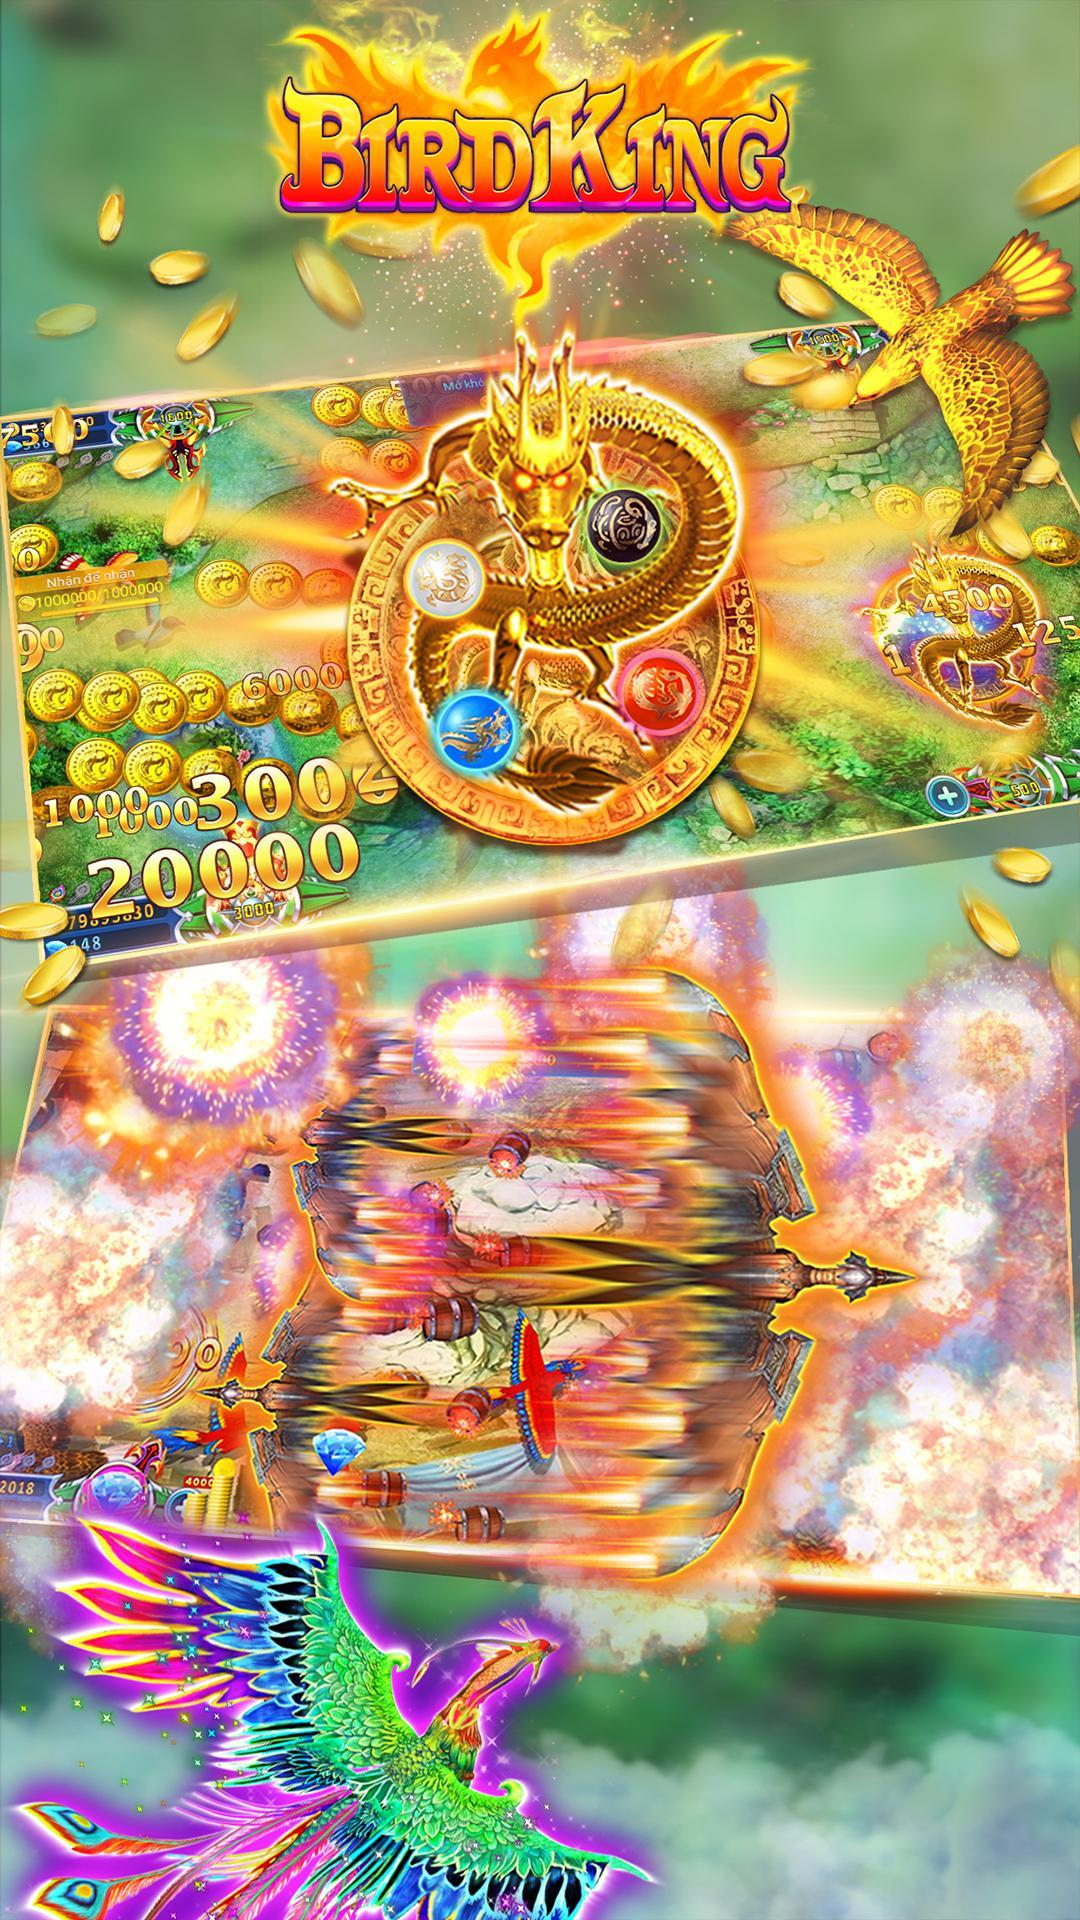 Dragon King Fishing Online-Arcade  Fish Games 5.2.0 Screenshot 5